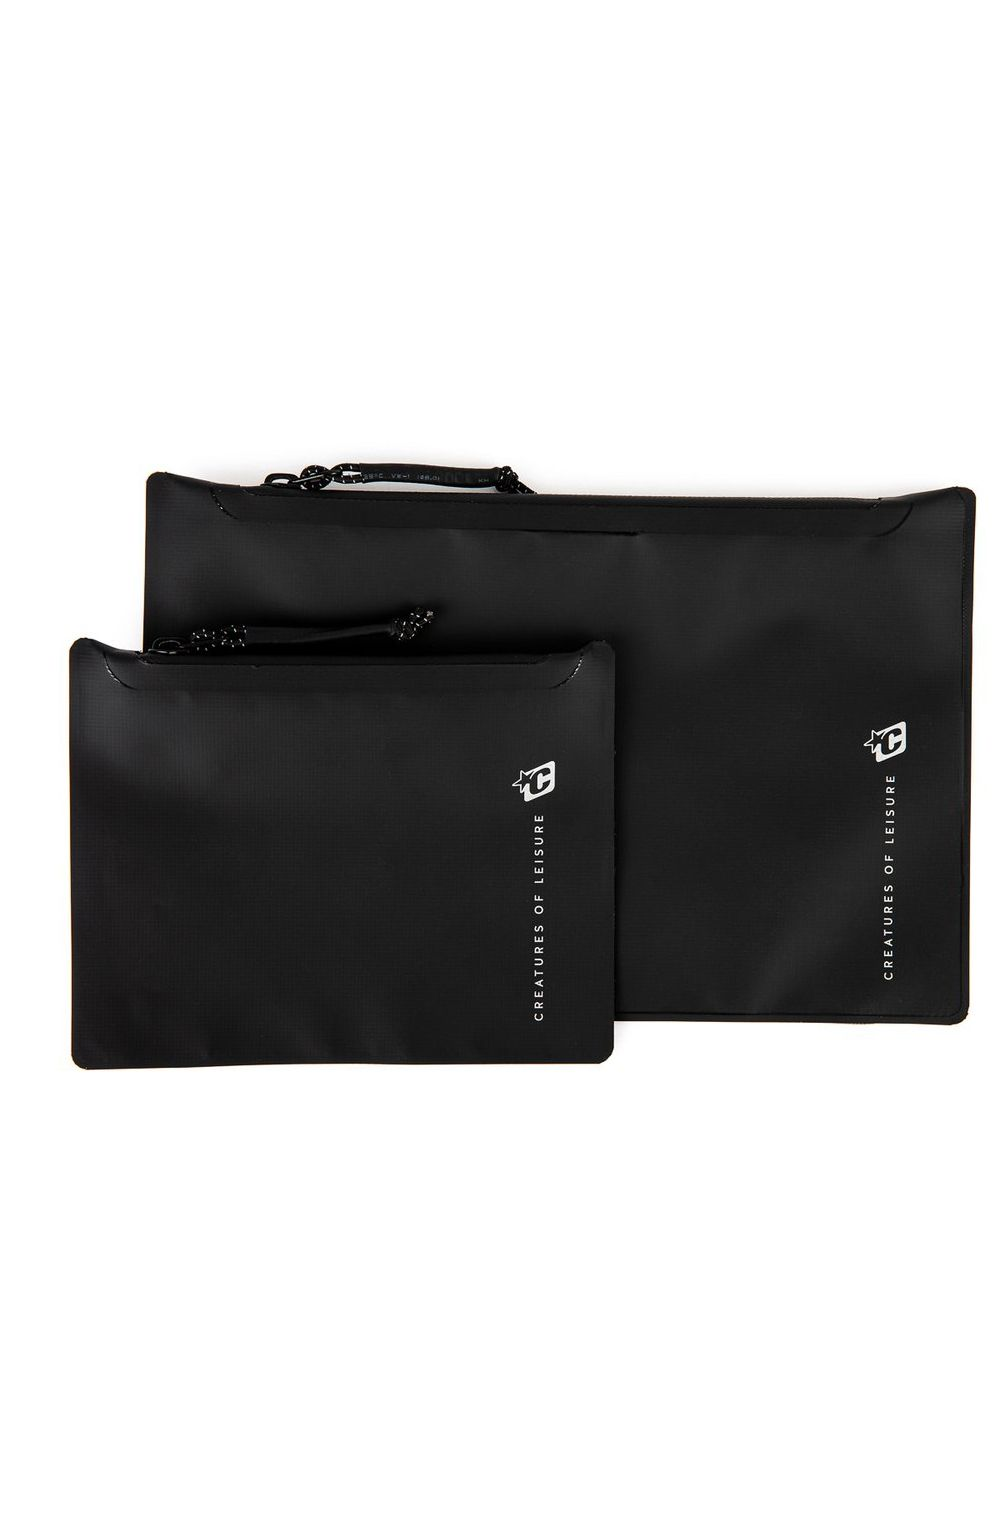 Mochila Creatures DAY USE DRY STORAGE (2 PACK) Black